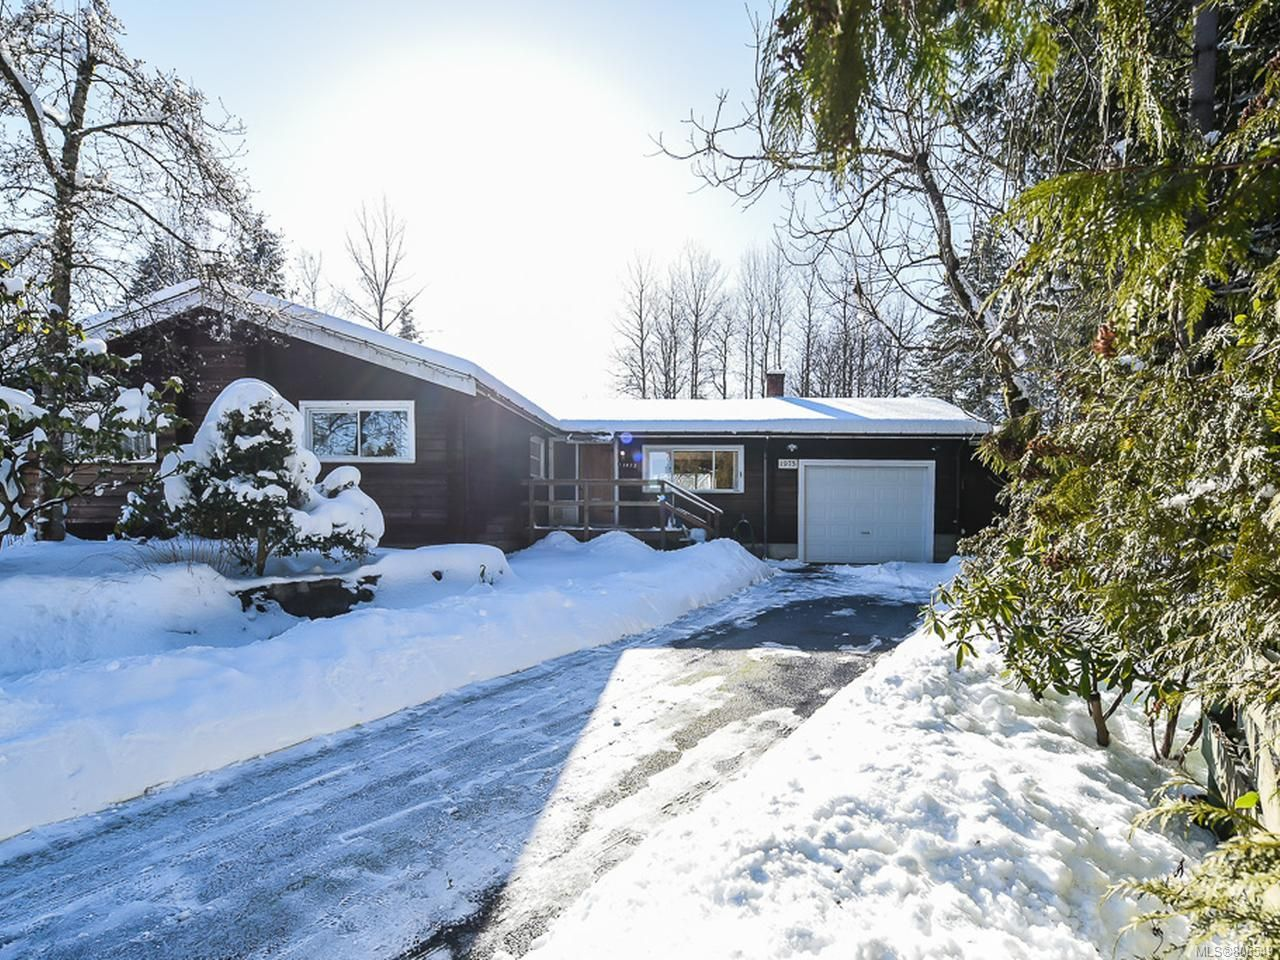 Main Photo: 1975 DOGWOOD DRIVE in COURTENAY: CV Courtenay City House for sale (Comox Valley)  : MLS®# 806549